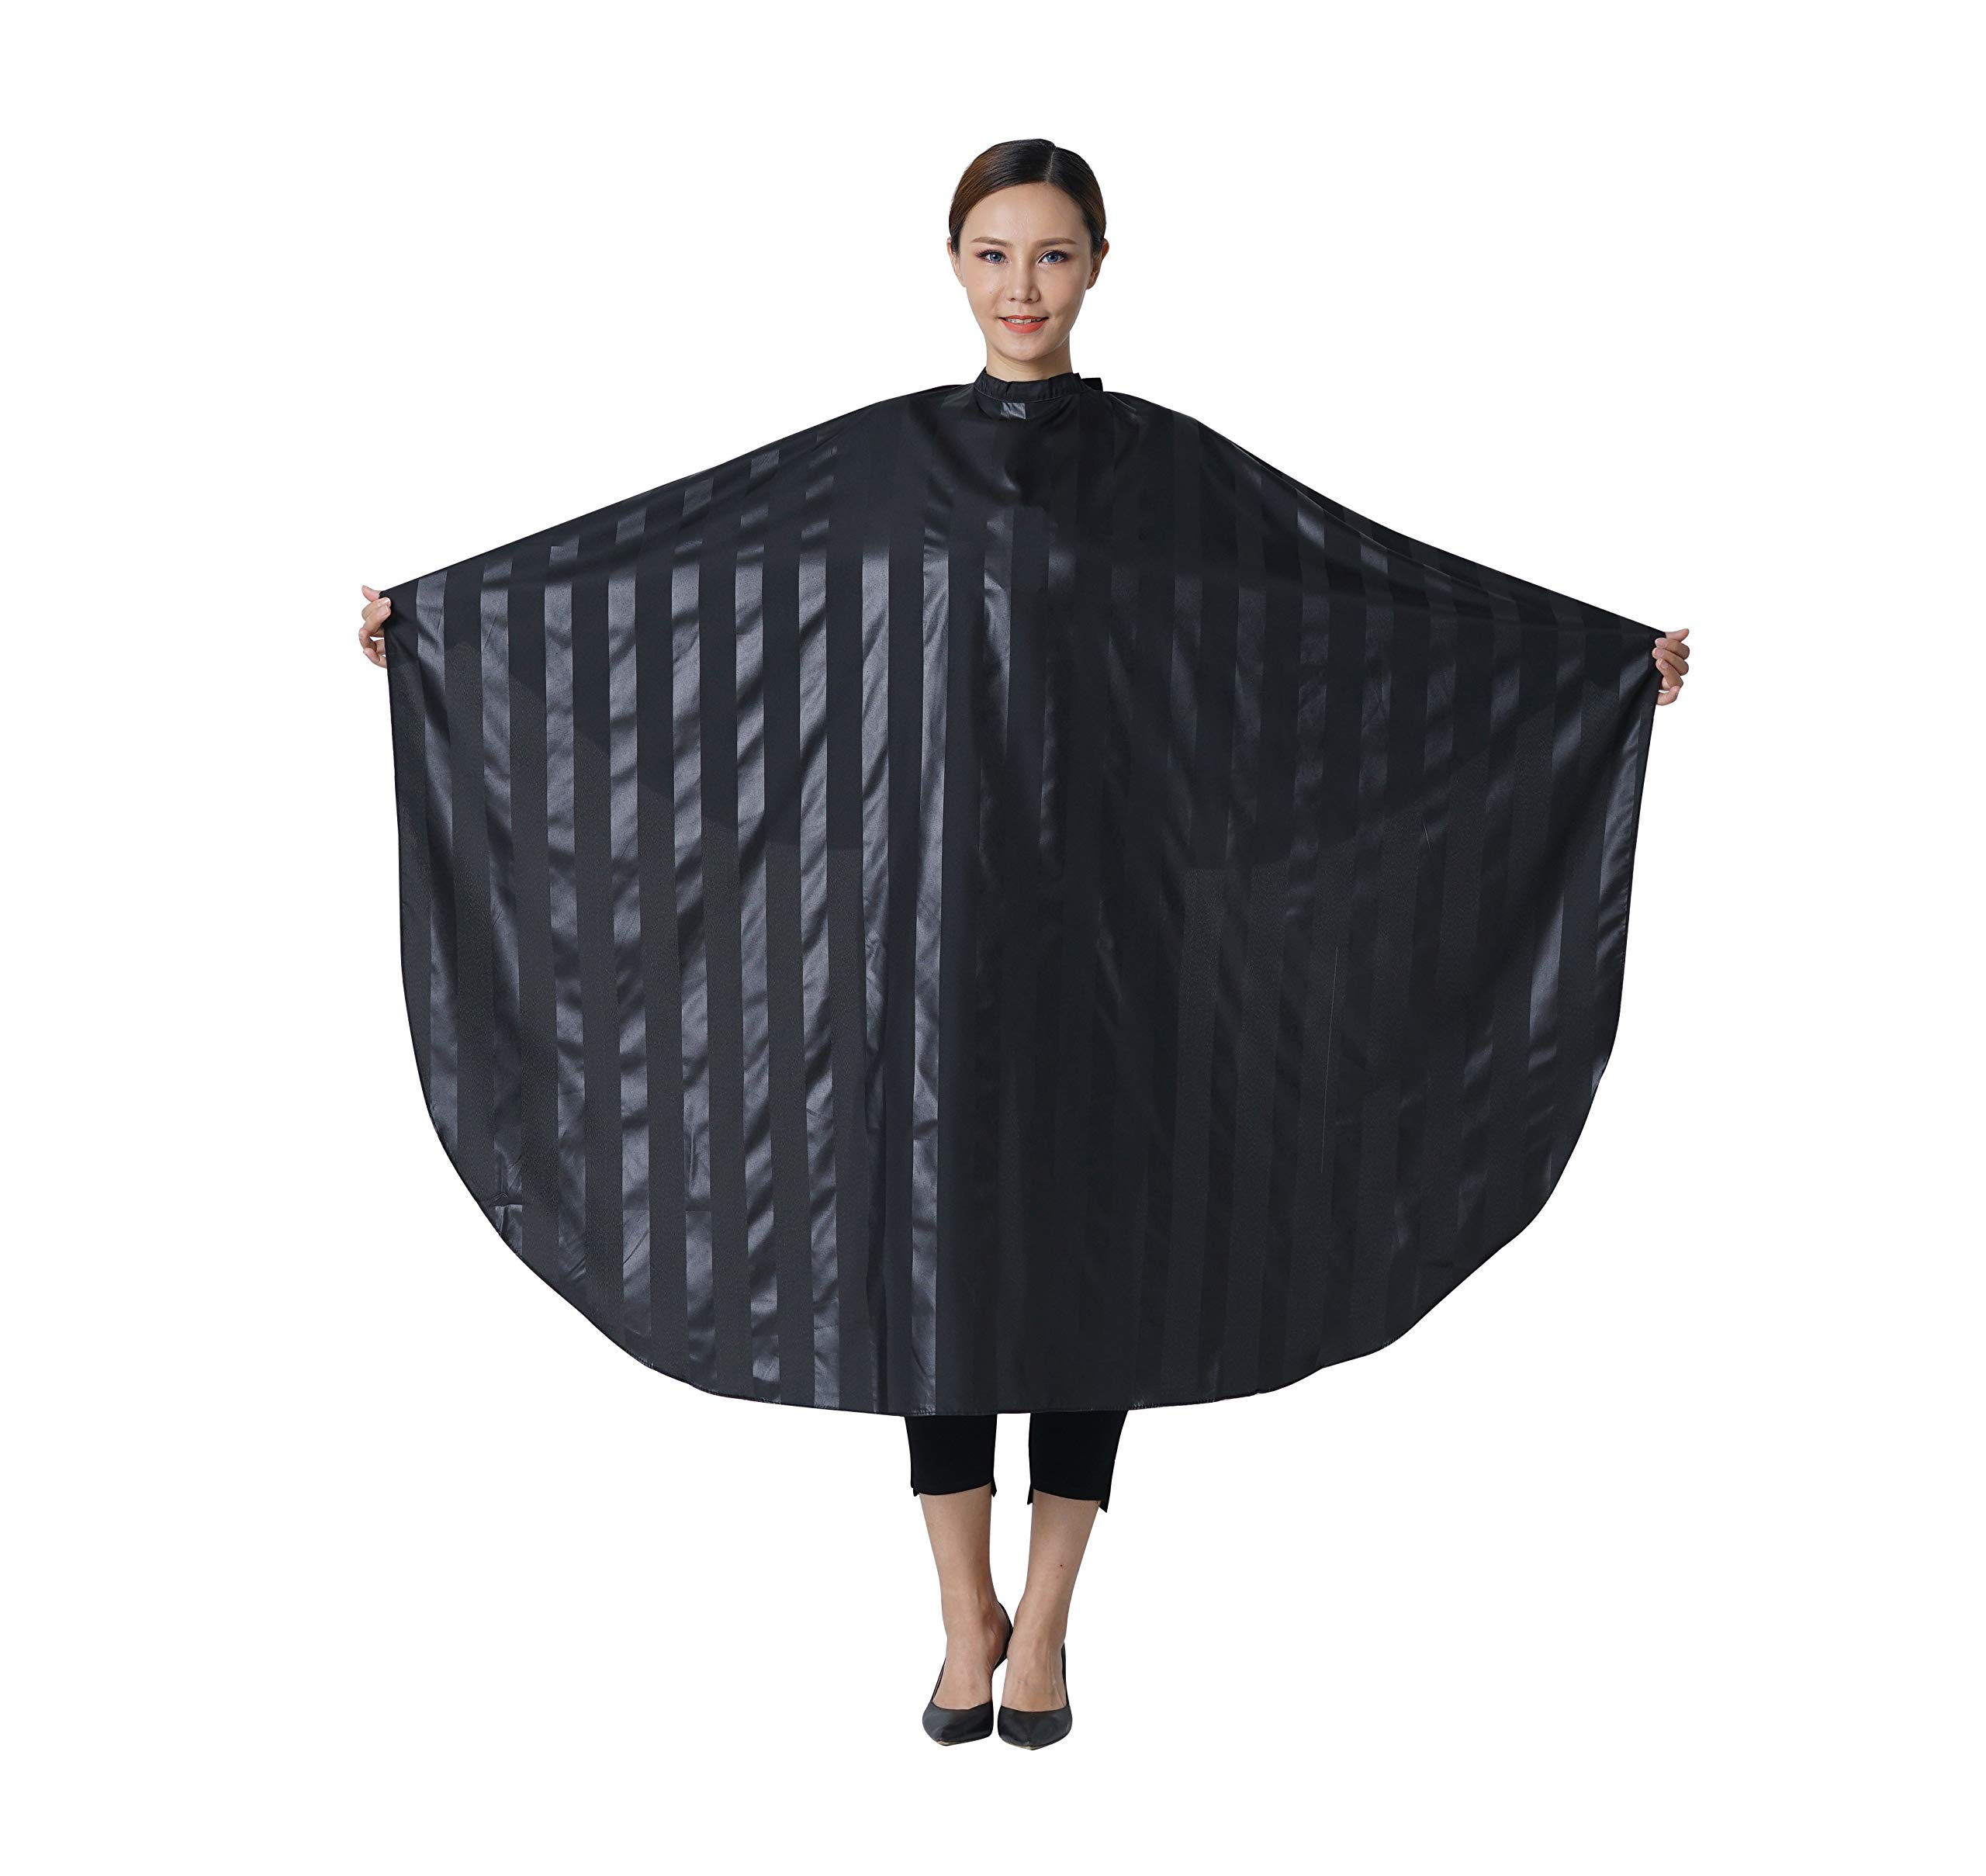 SMARTHAIR Professional Salon Cape Polyester Barber Cape Hair Cut Cape,54''x62'',Black,C035001C by SMARTHAIR